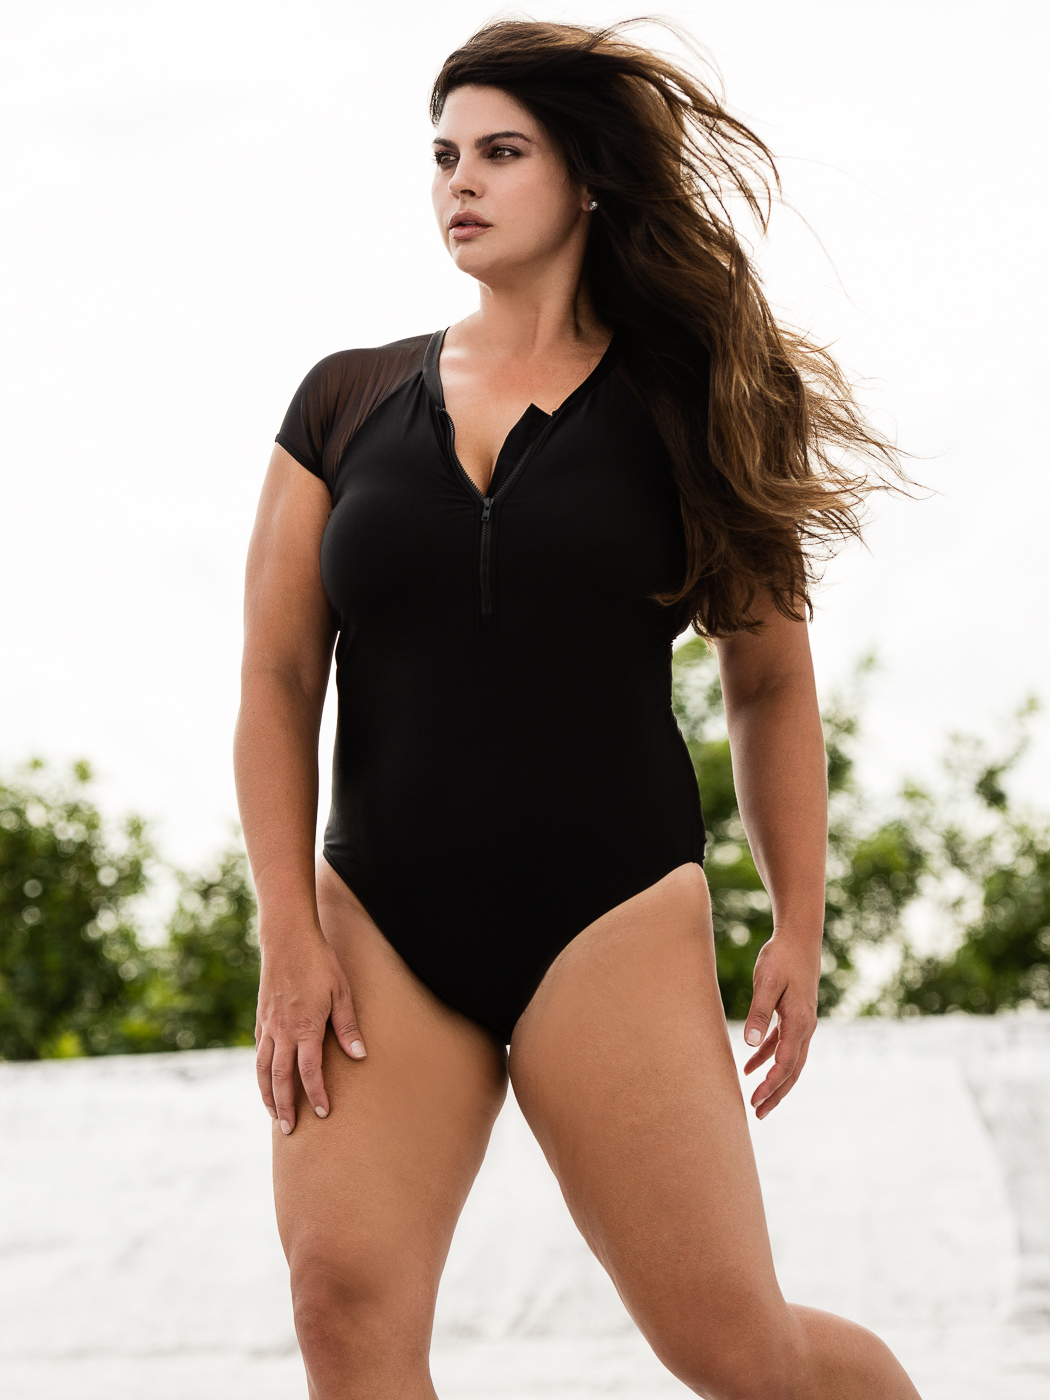 Swimsuit by  Simply Be . Photo by  Nick Suarez . HMU by  Georgia Mitropoulos .